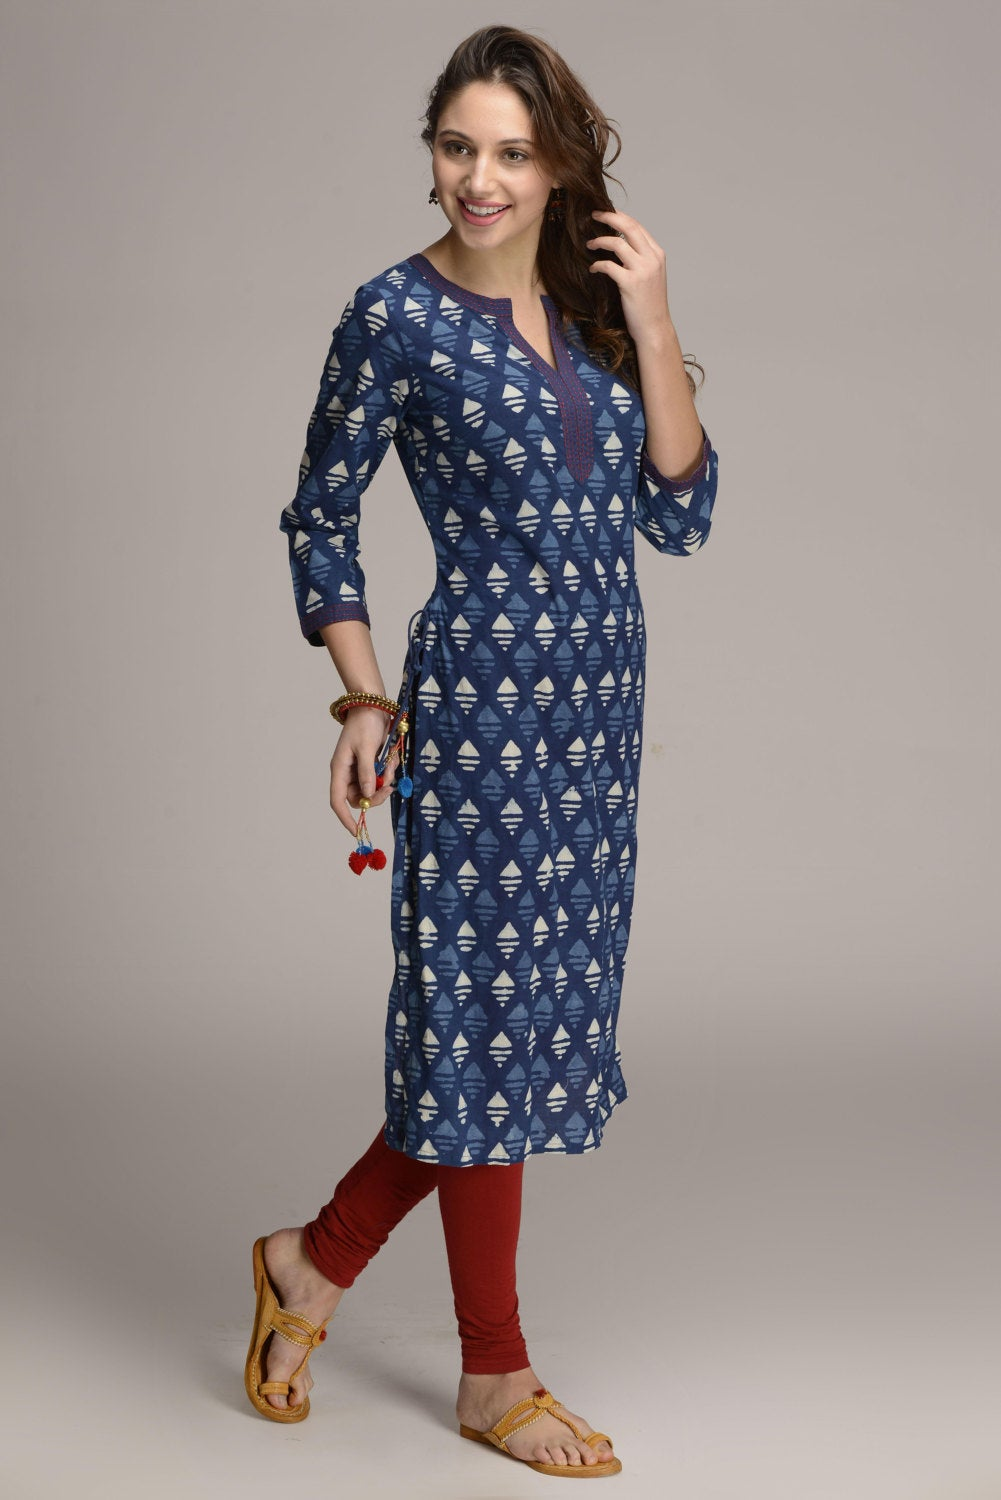 Indigo Hand block printed ethnic long Indian kurta with side tassels and hand embroidery on neck